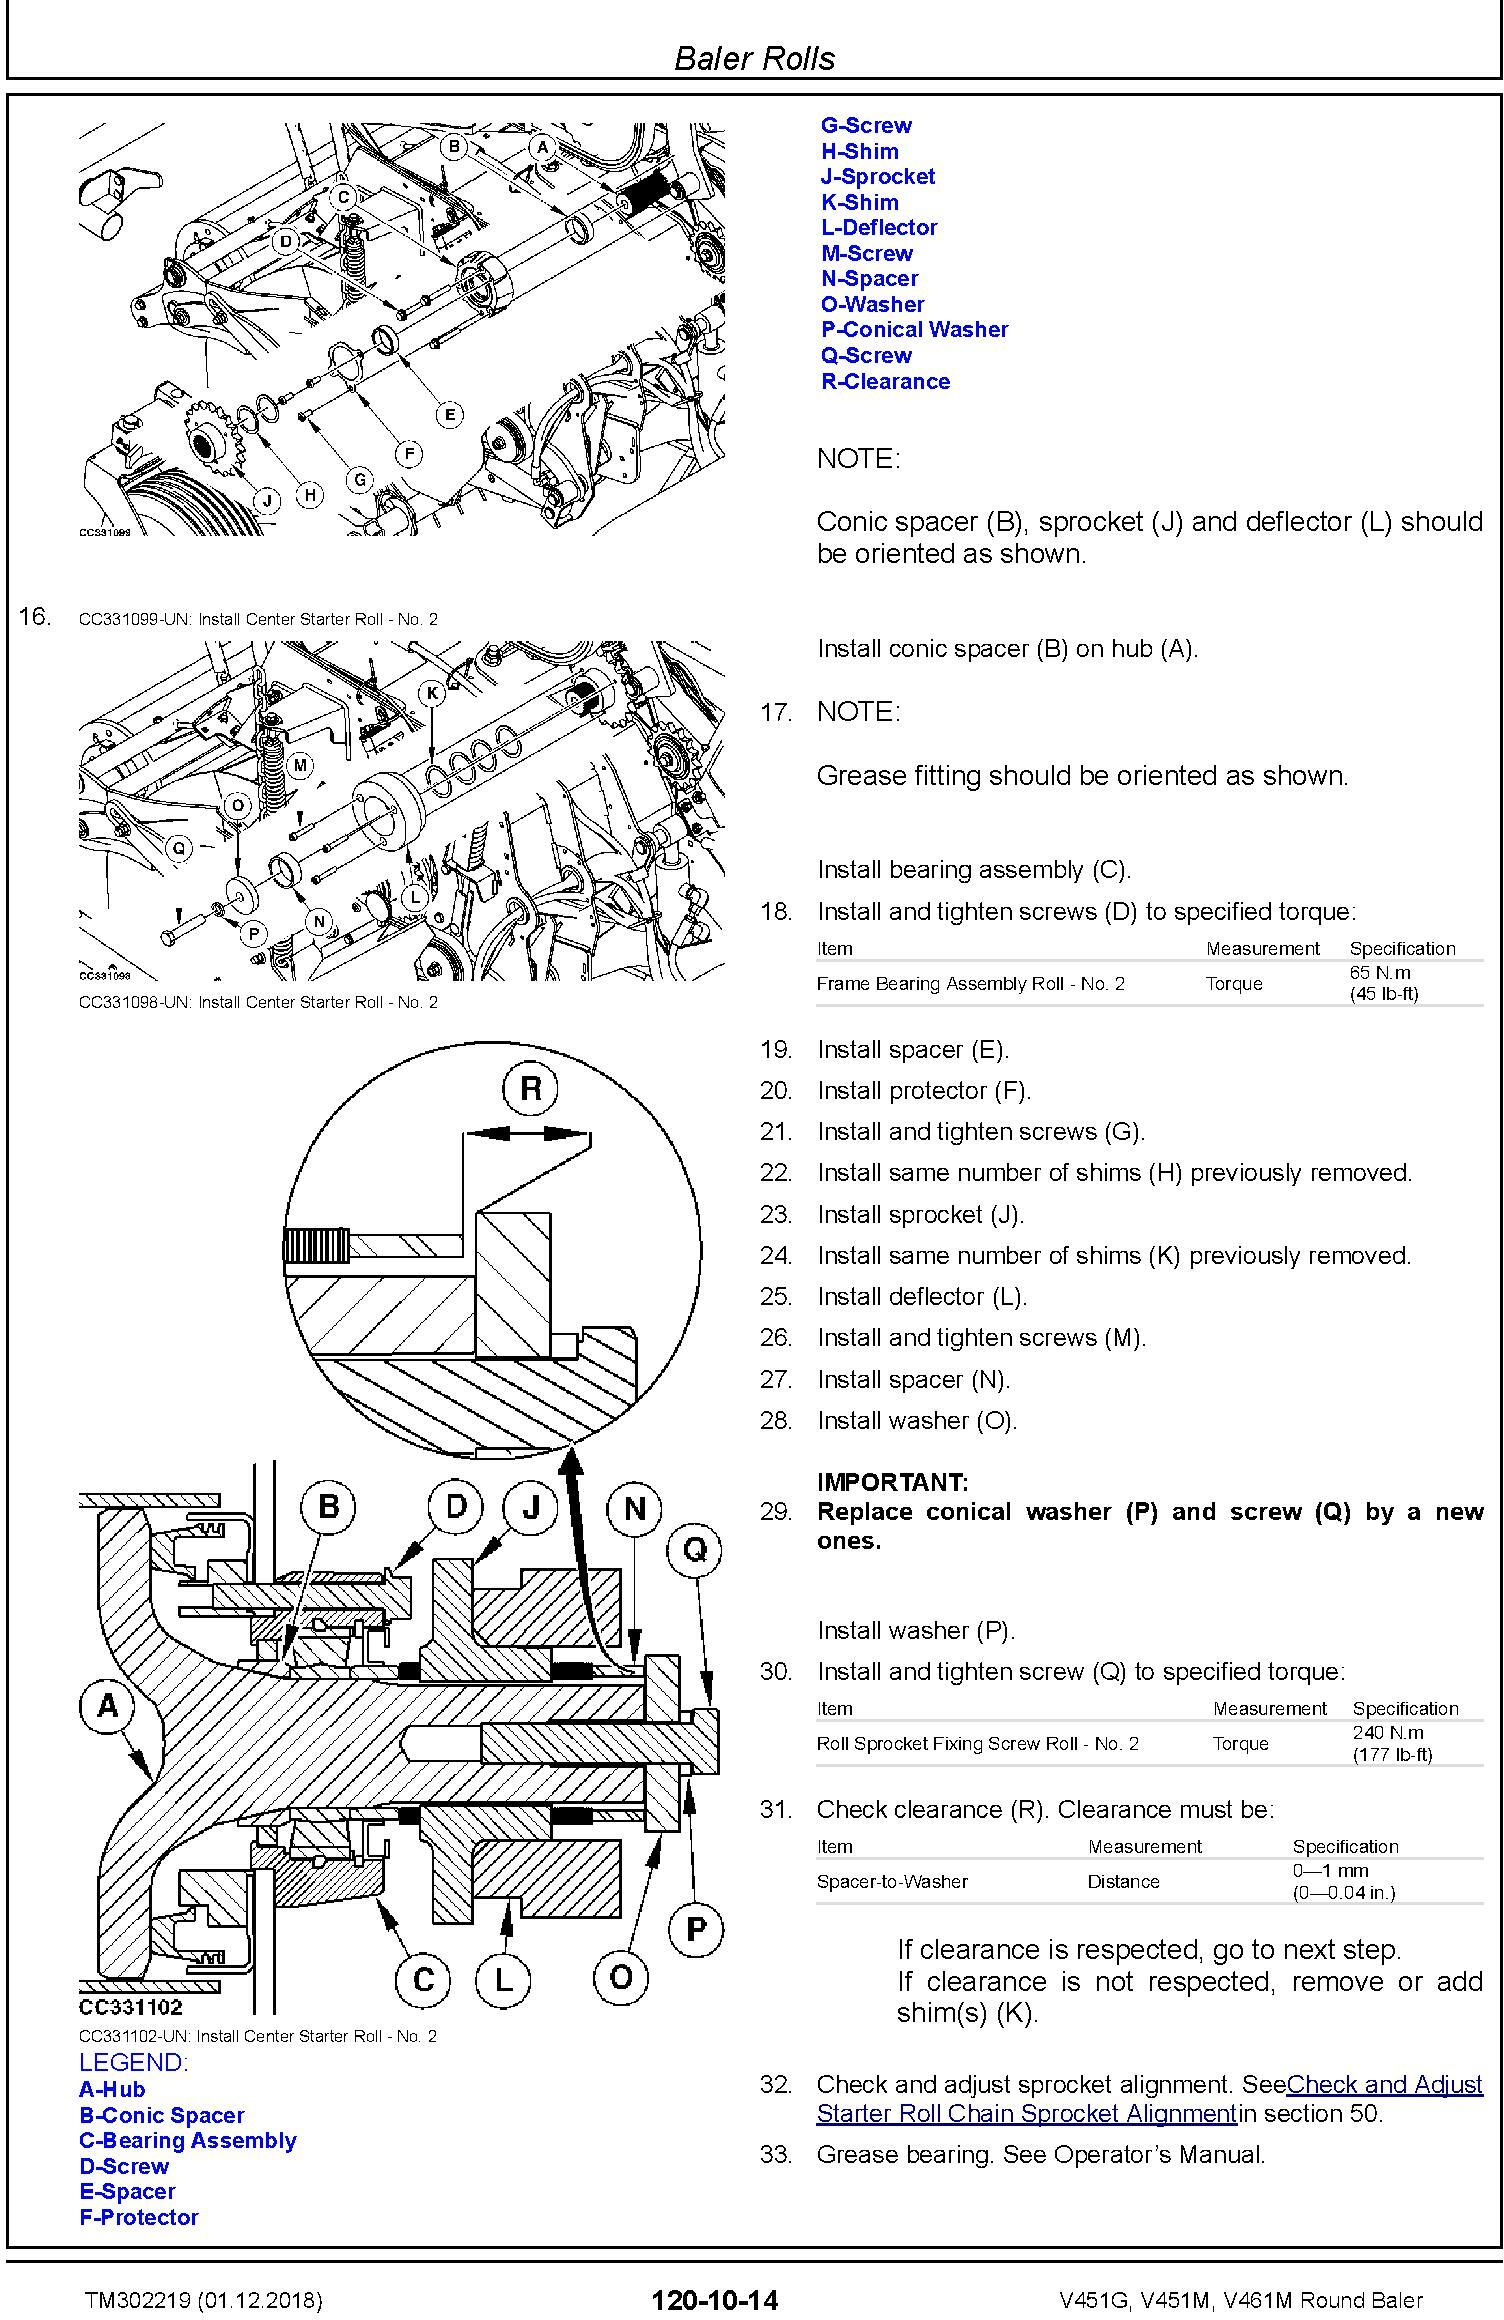 John Deere V451G, V451M, V461M Round Baler Service Repair Technical Manual (TM302219) - 3